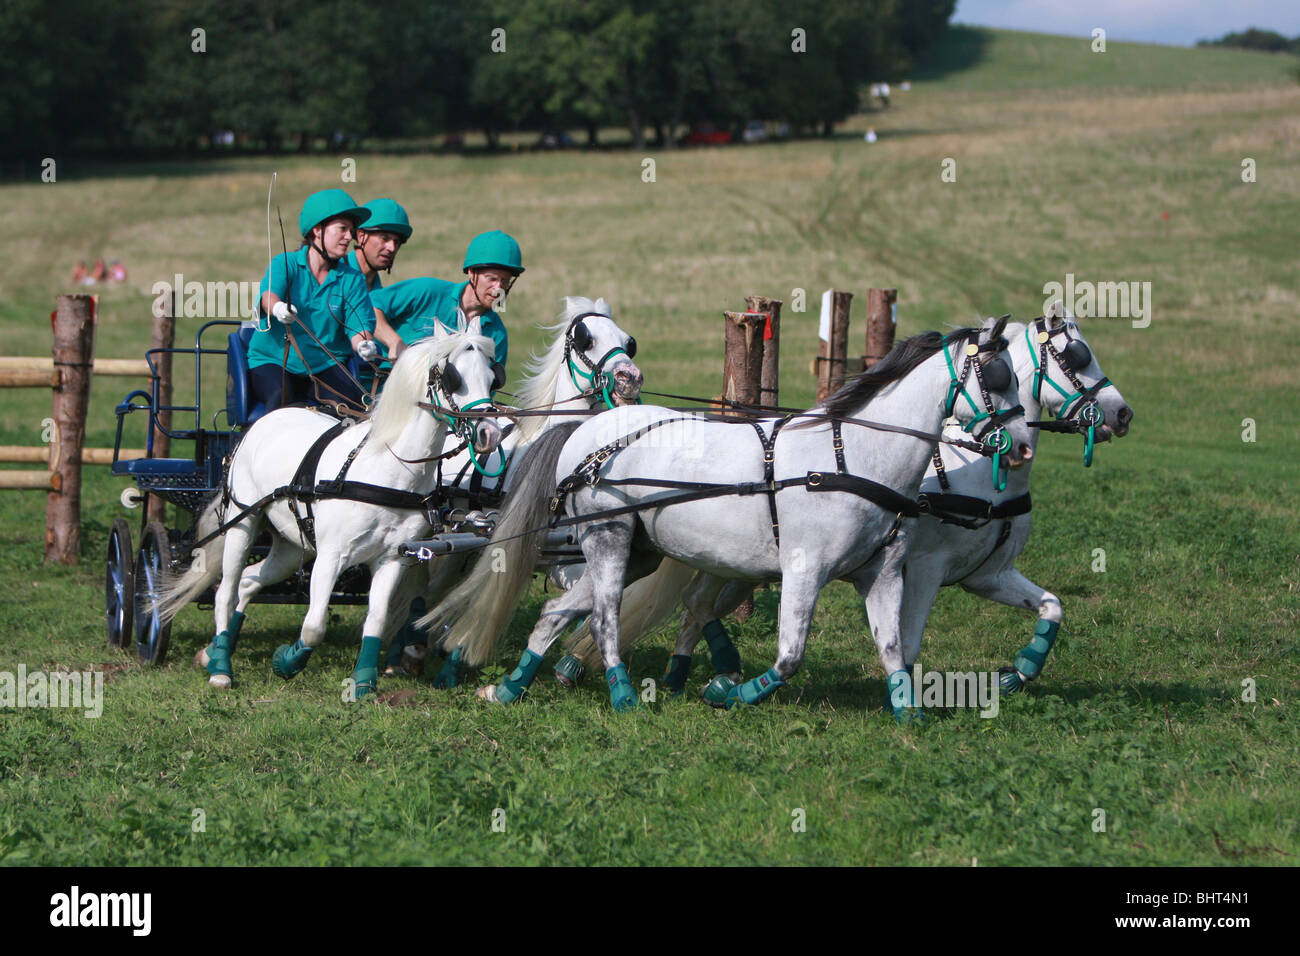 Pony Harness Club trial competition at Goodwood, West Sussex, England, UK - Stock Image